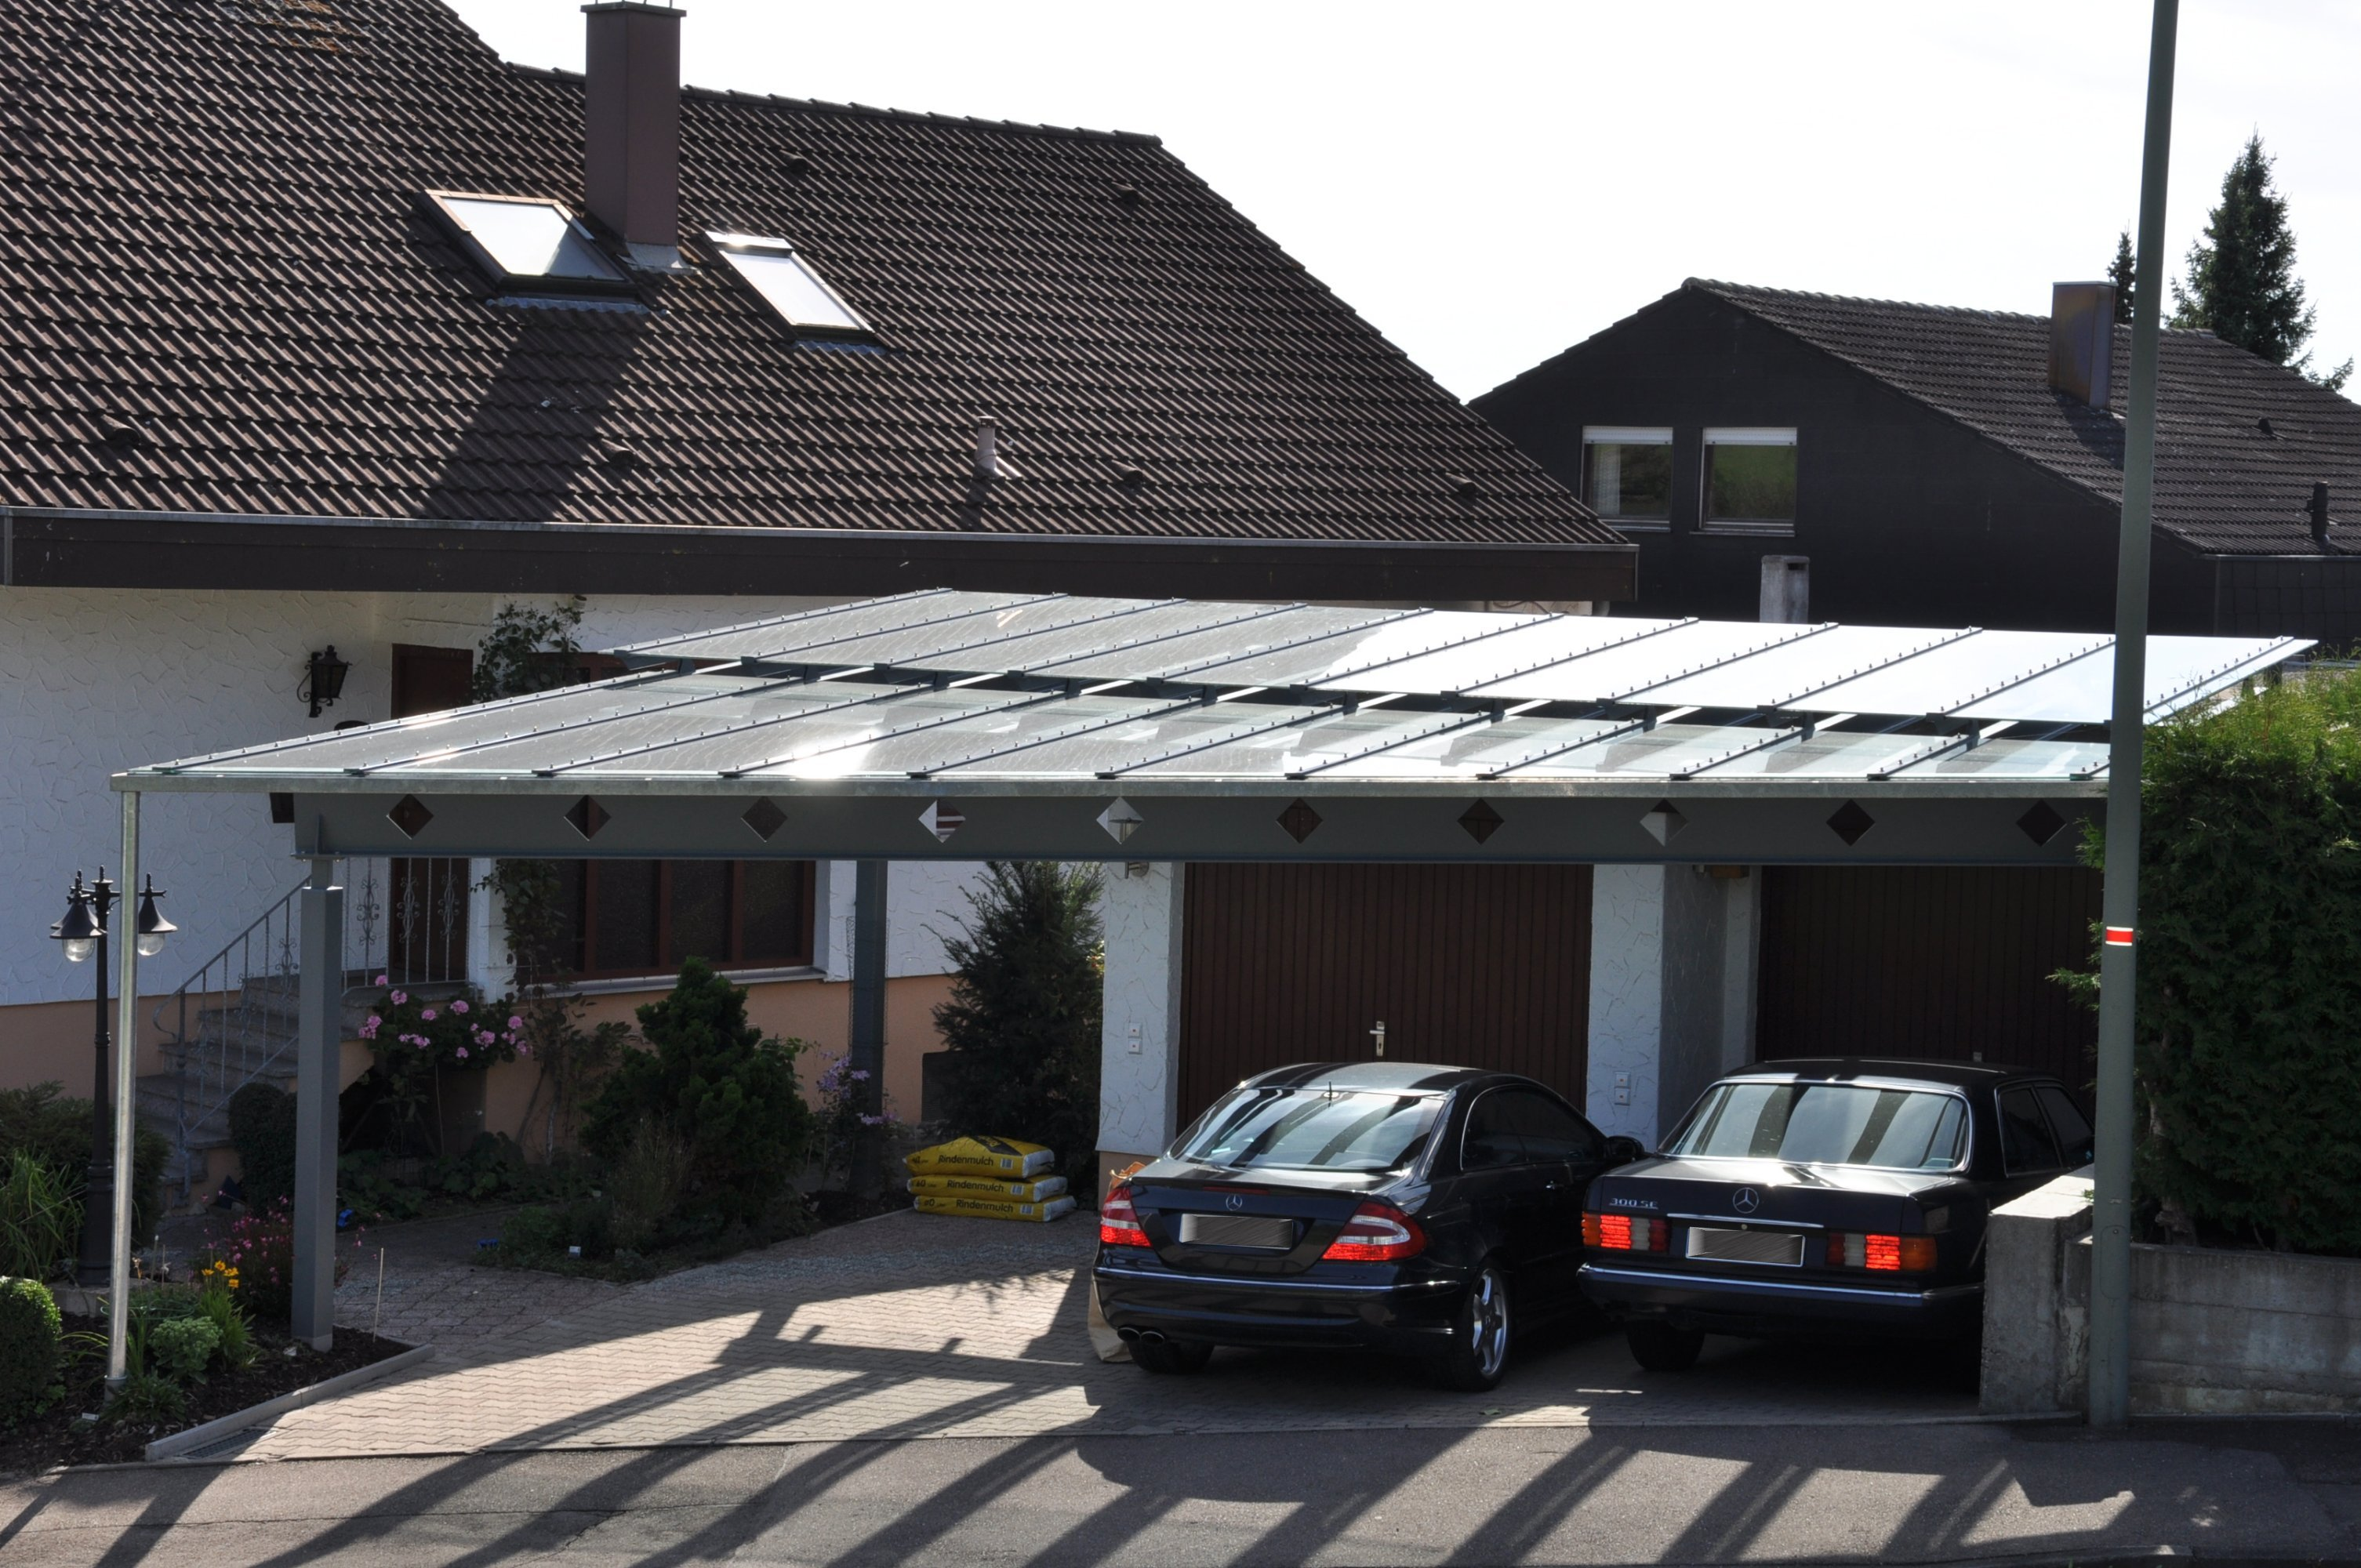 doppelcarport mit abgestufter glaseindeckung stahlbau n gele. Black Bedroom Furniture Sets. Home Design Ideas